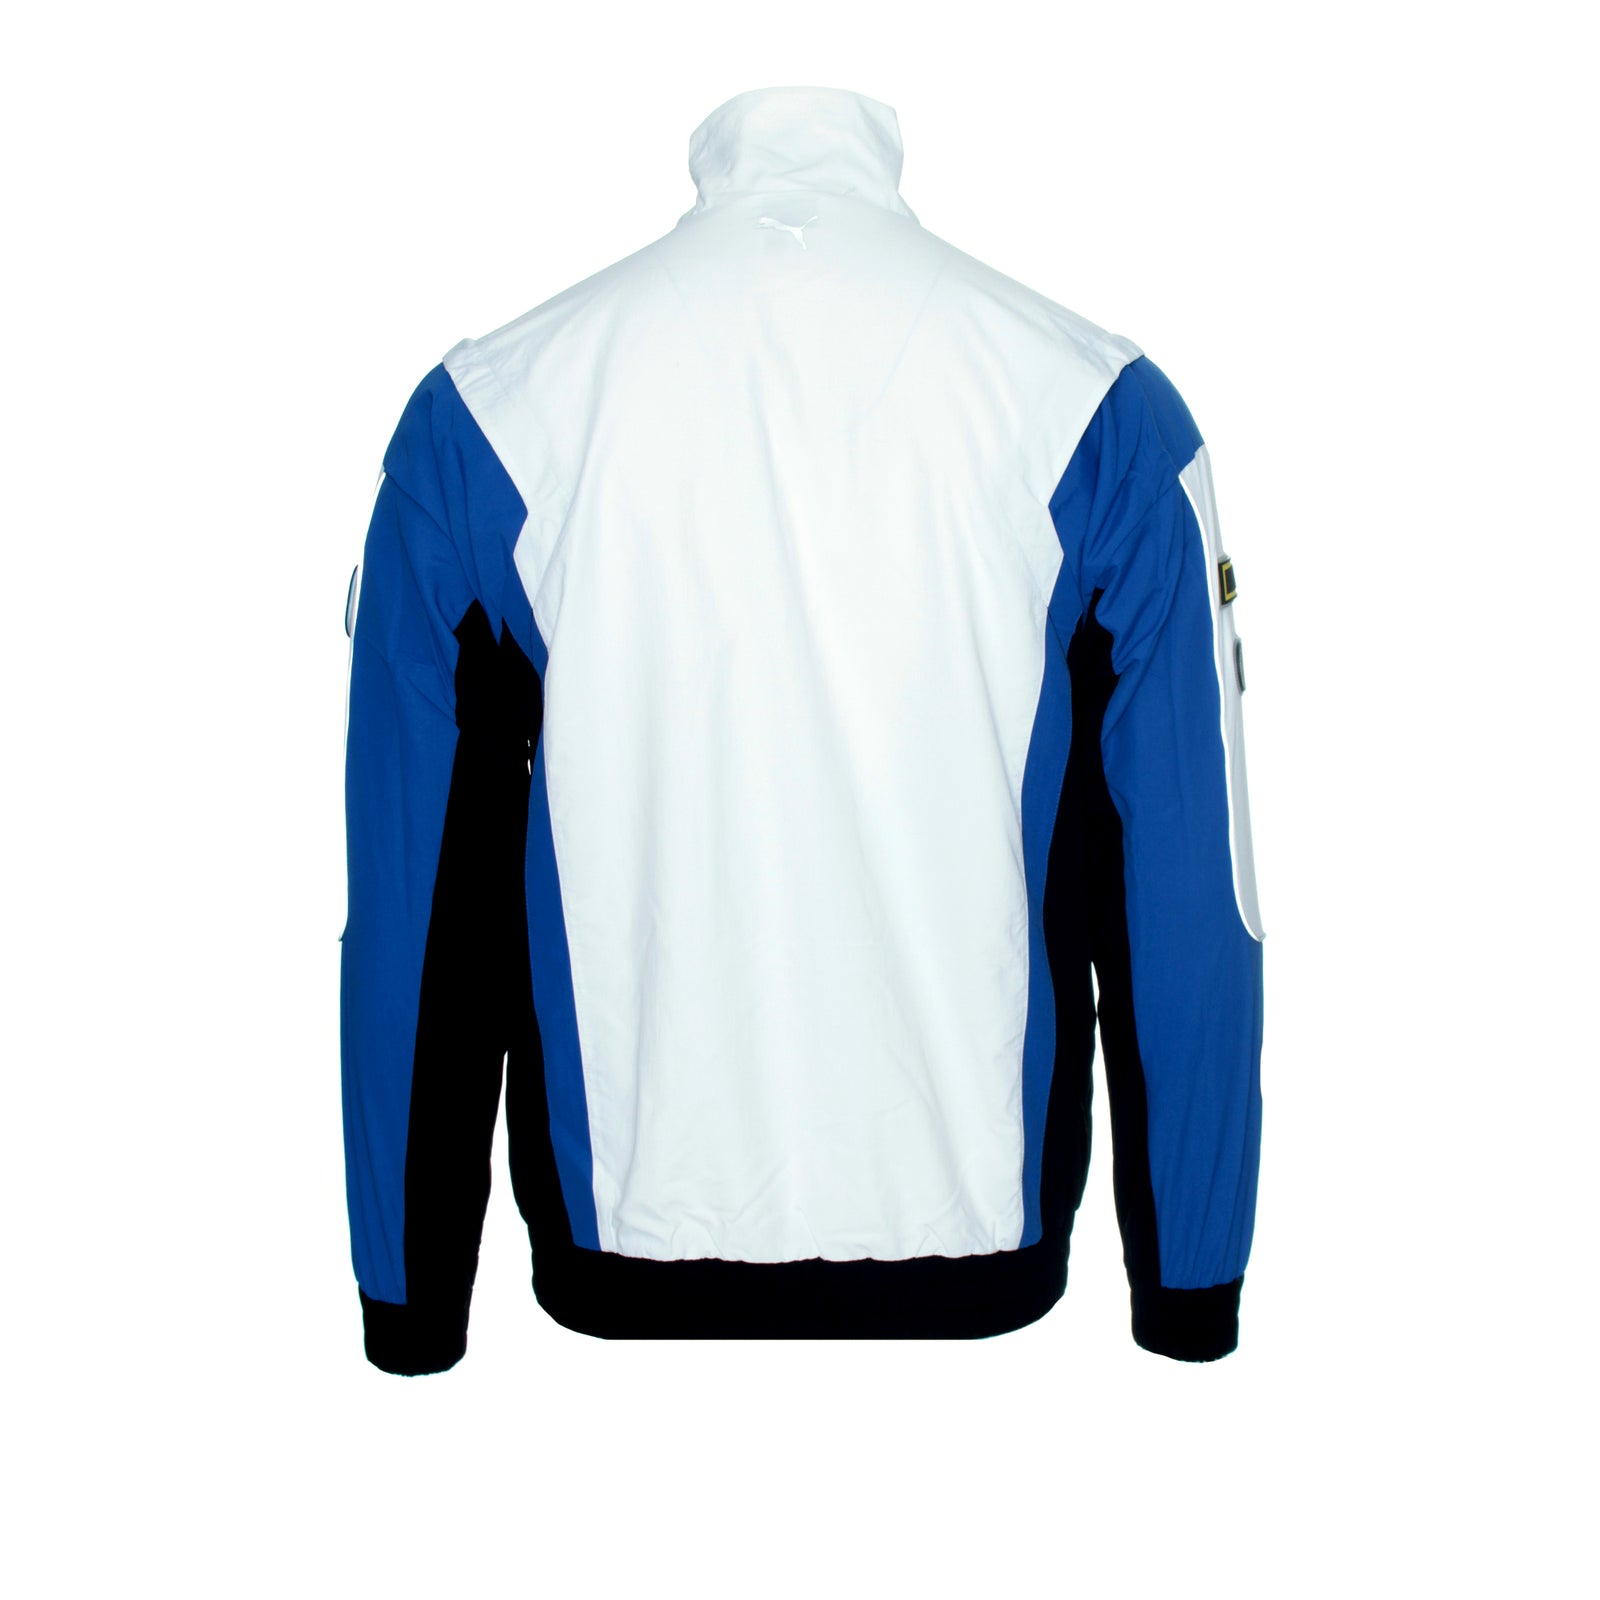 Scudera Ferrari Street Woven Men's Jacket White/Blue